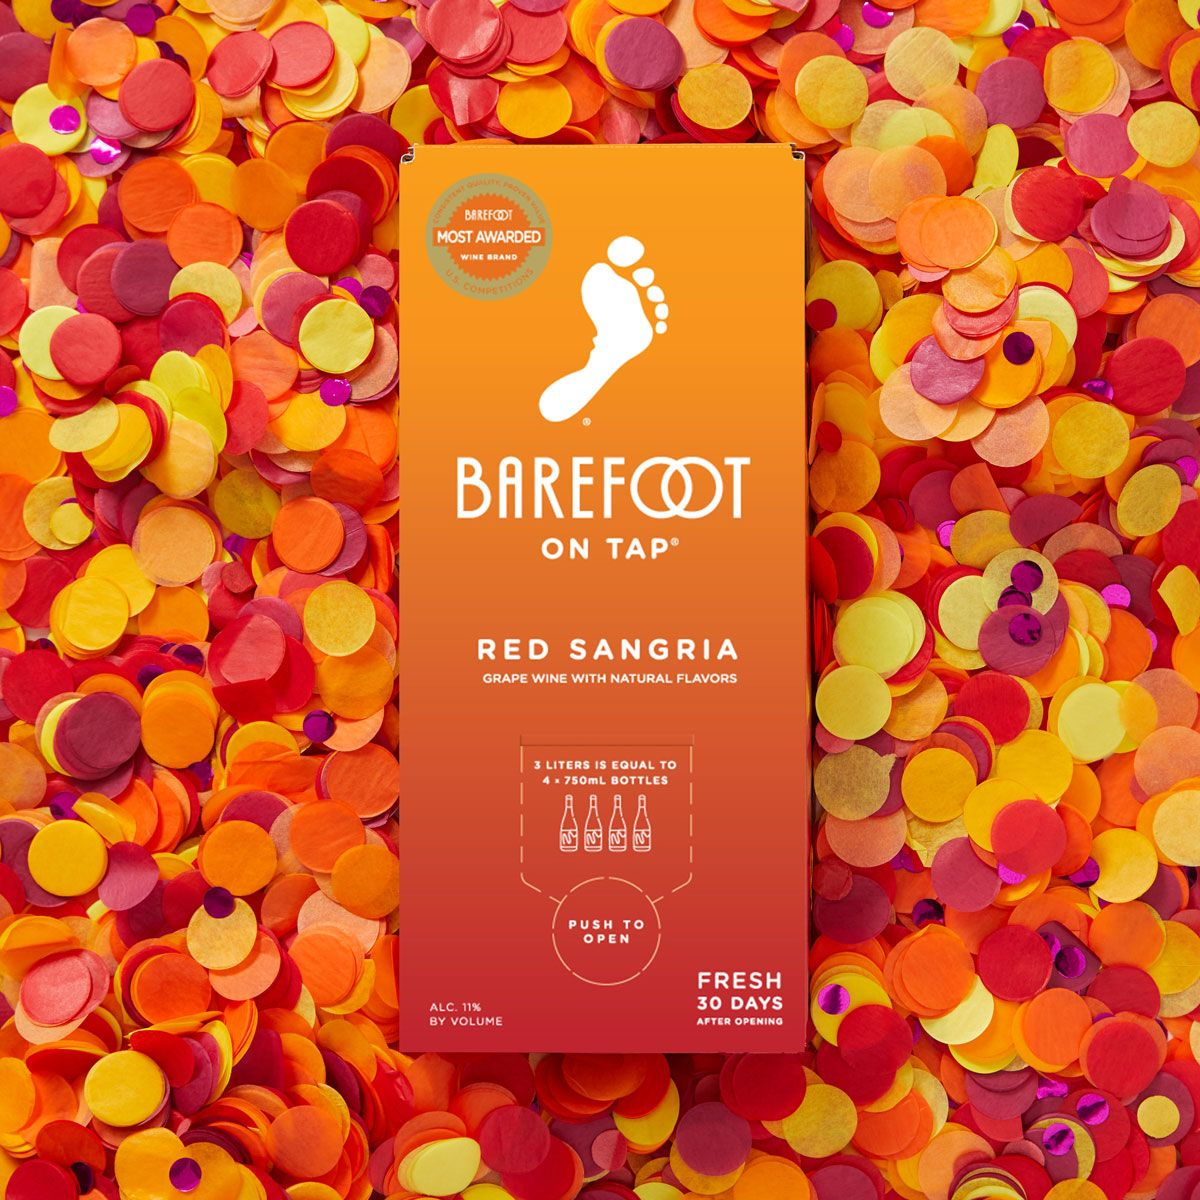 Barefoot On Tap Red Sangria In 2020 Red Sangria Sangria Natural Flavors